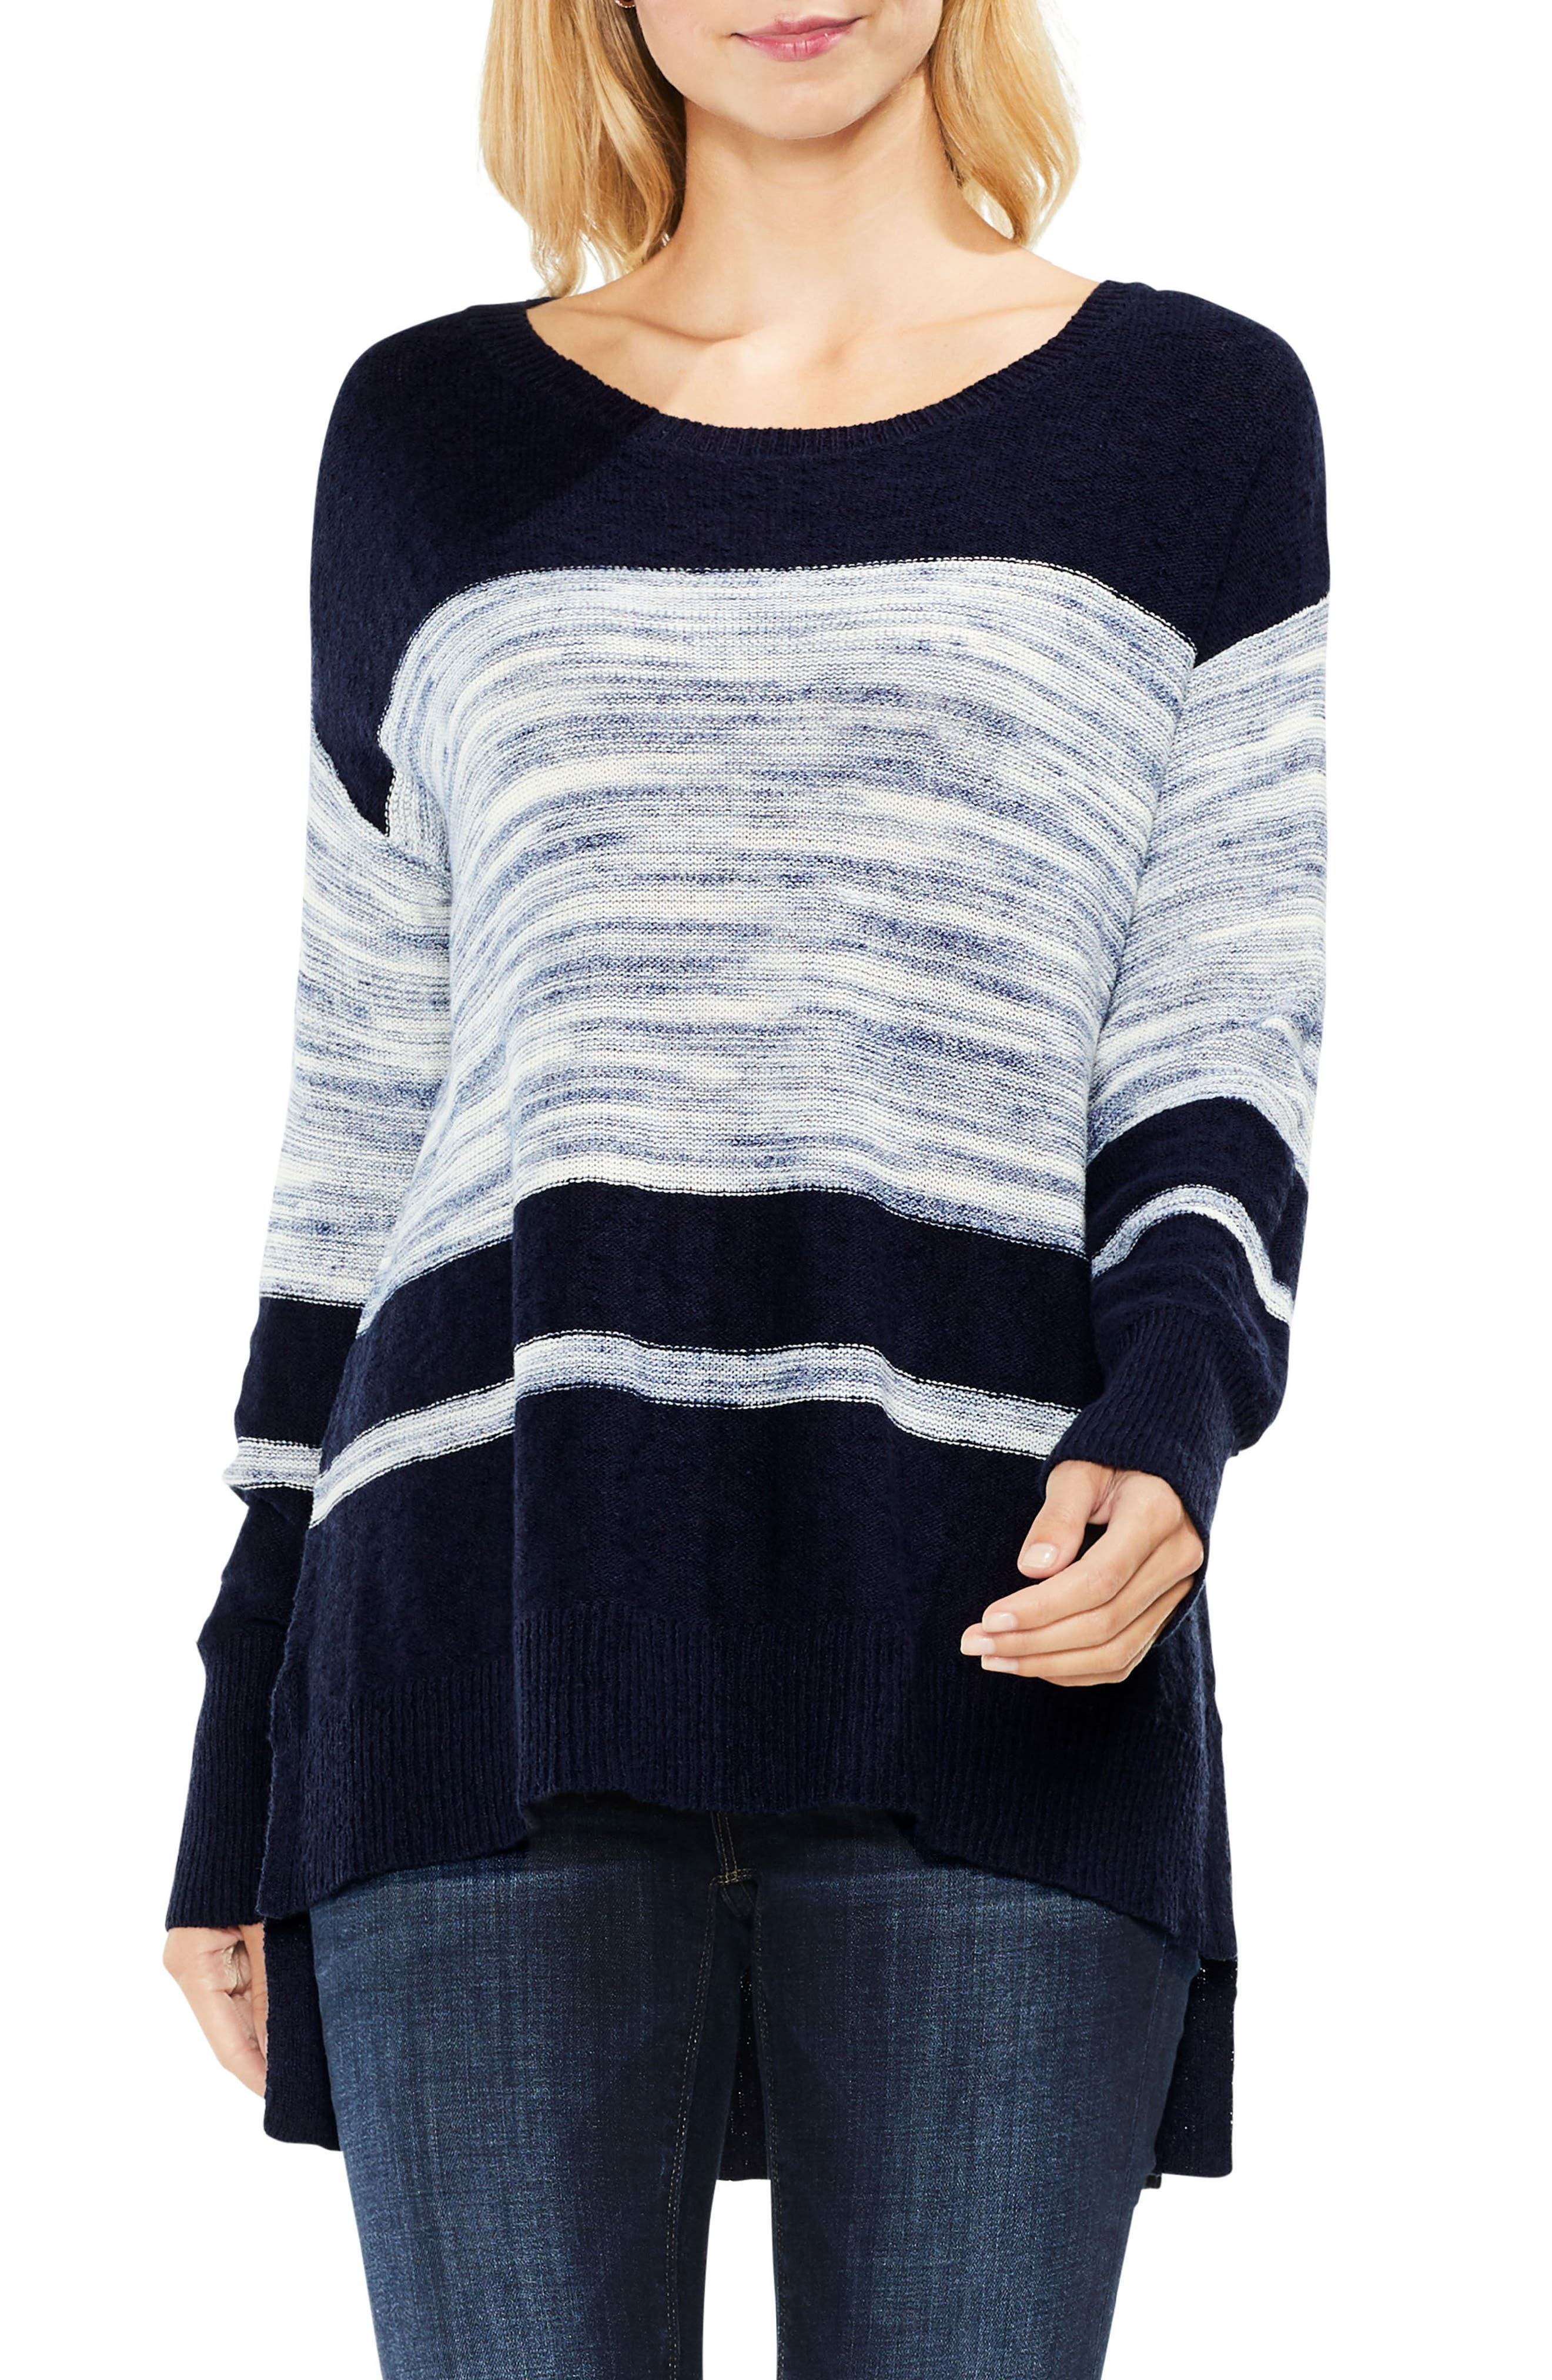 Main Image - Two by Vince Camuto Space Dye Stripe Sweater